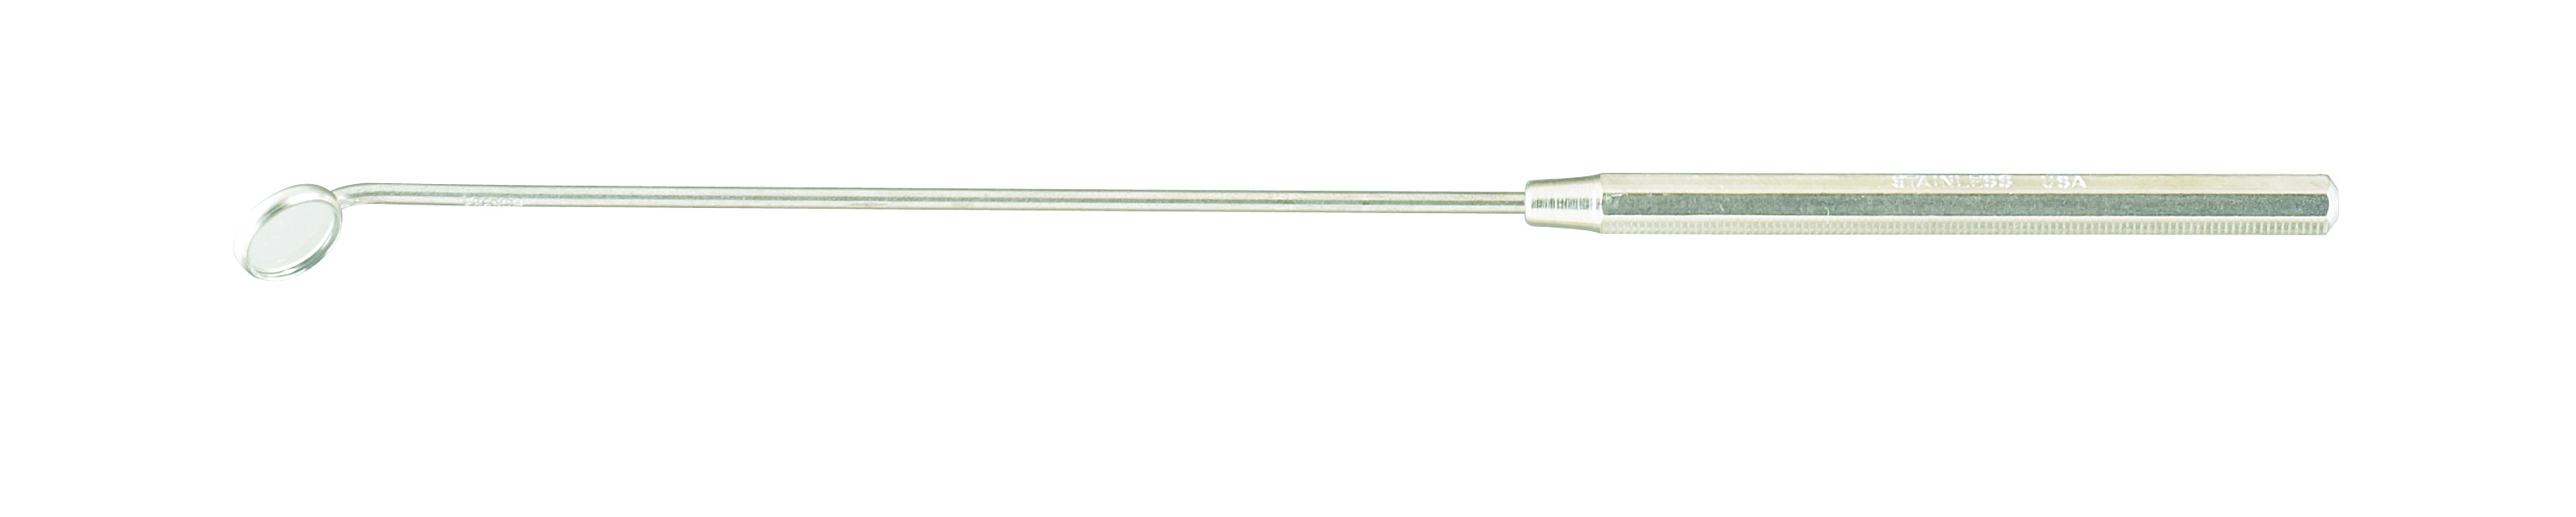 laryngeal-mirror-size-000-with-octagon-threaded-handle-10-mm-23-1-000-miltex.jpg